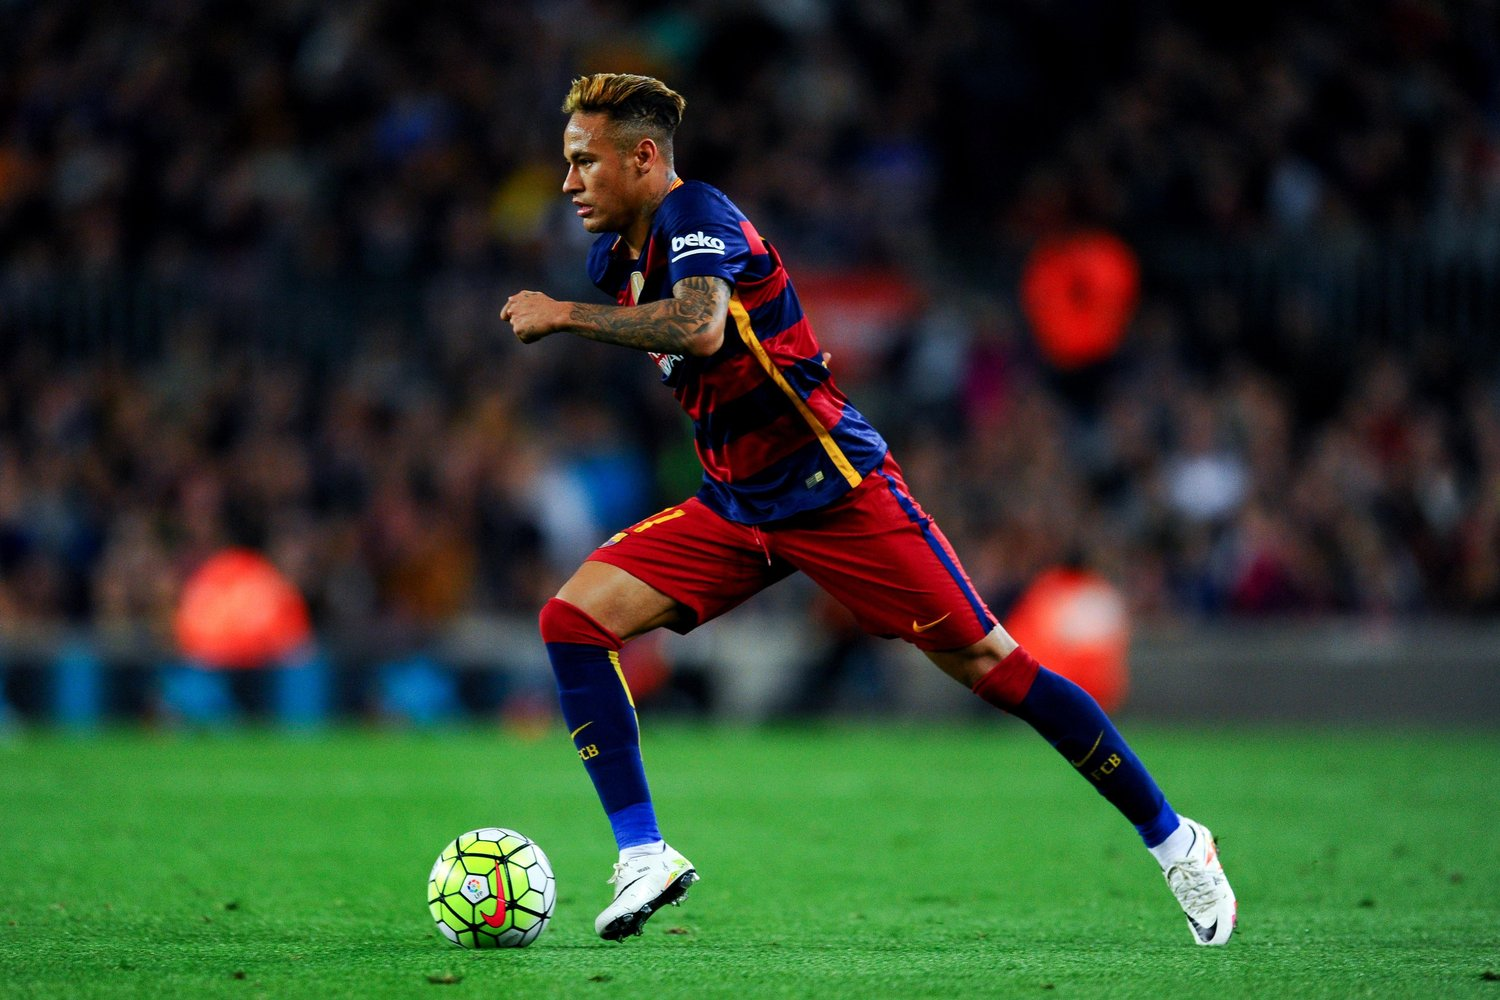 BARCELONA, SPAIN - APRIL 17: Neymar of FC Barcelona runs with the ball during the La Liga match between FC Barcelona and Valencia CF at Camp Nou on April 17, 2016 in Barcelona, Spain. (Photo by David Ramos/Getty Images)